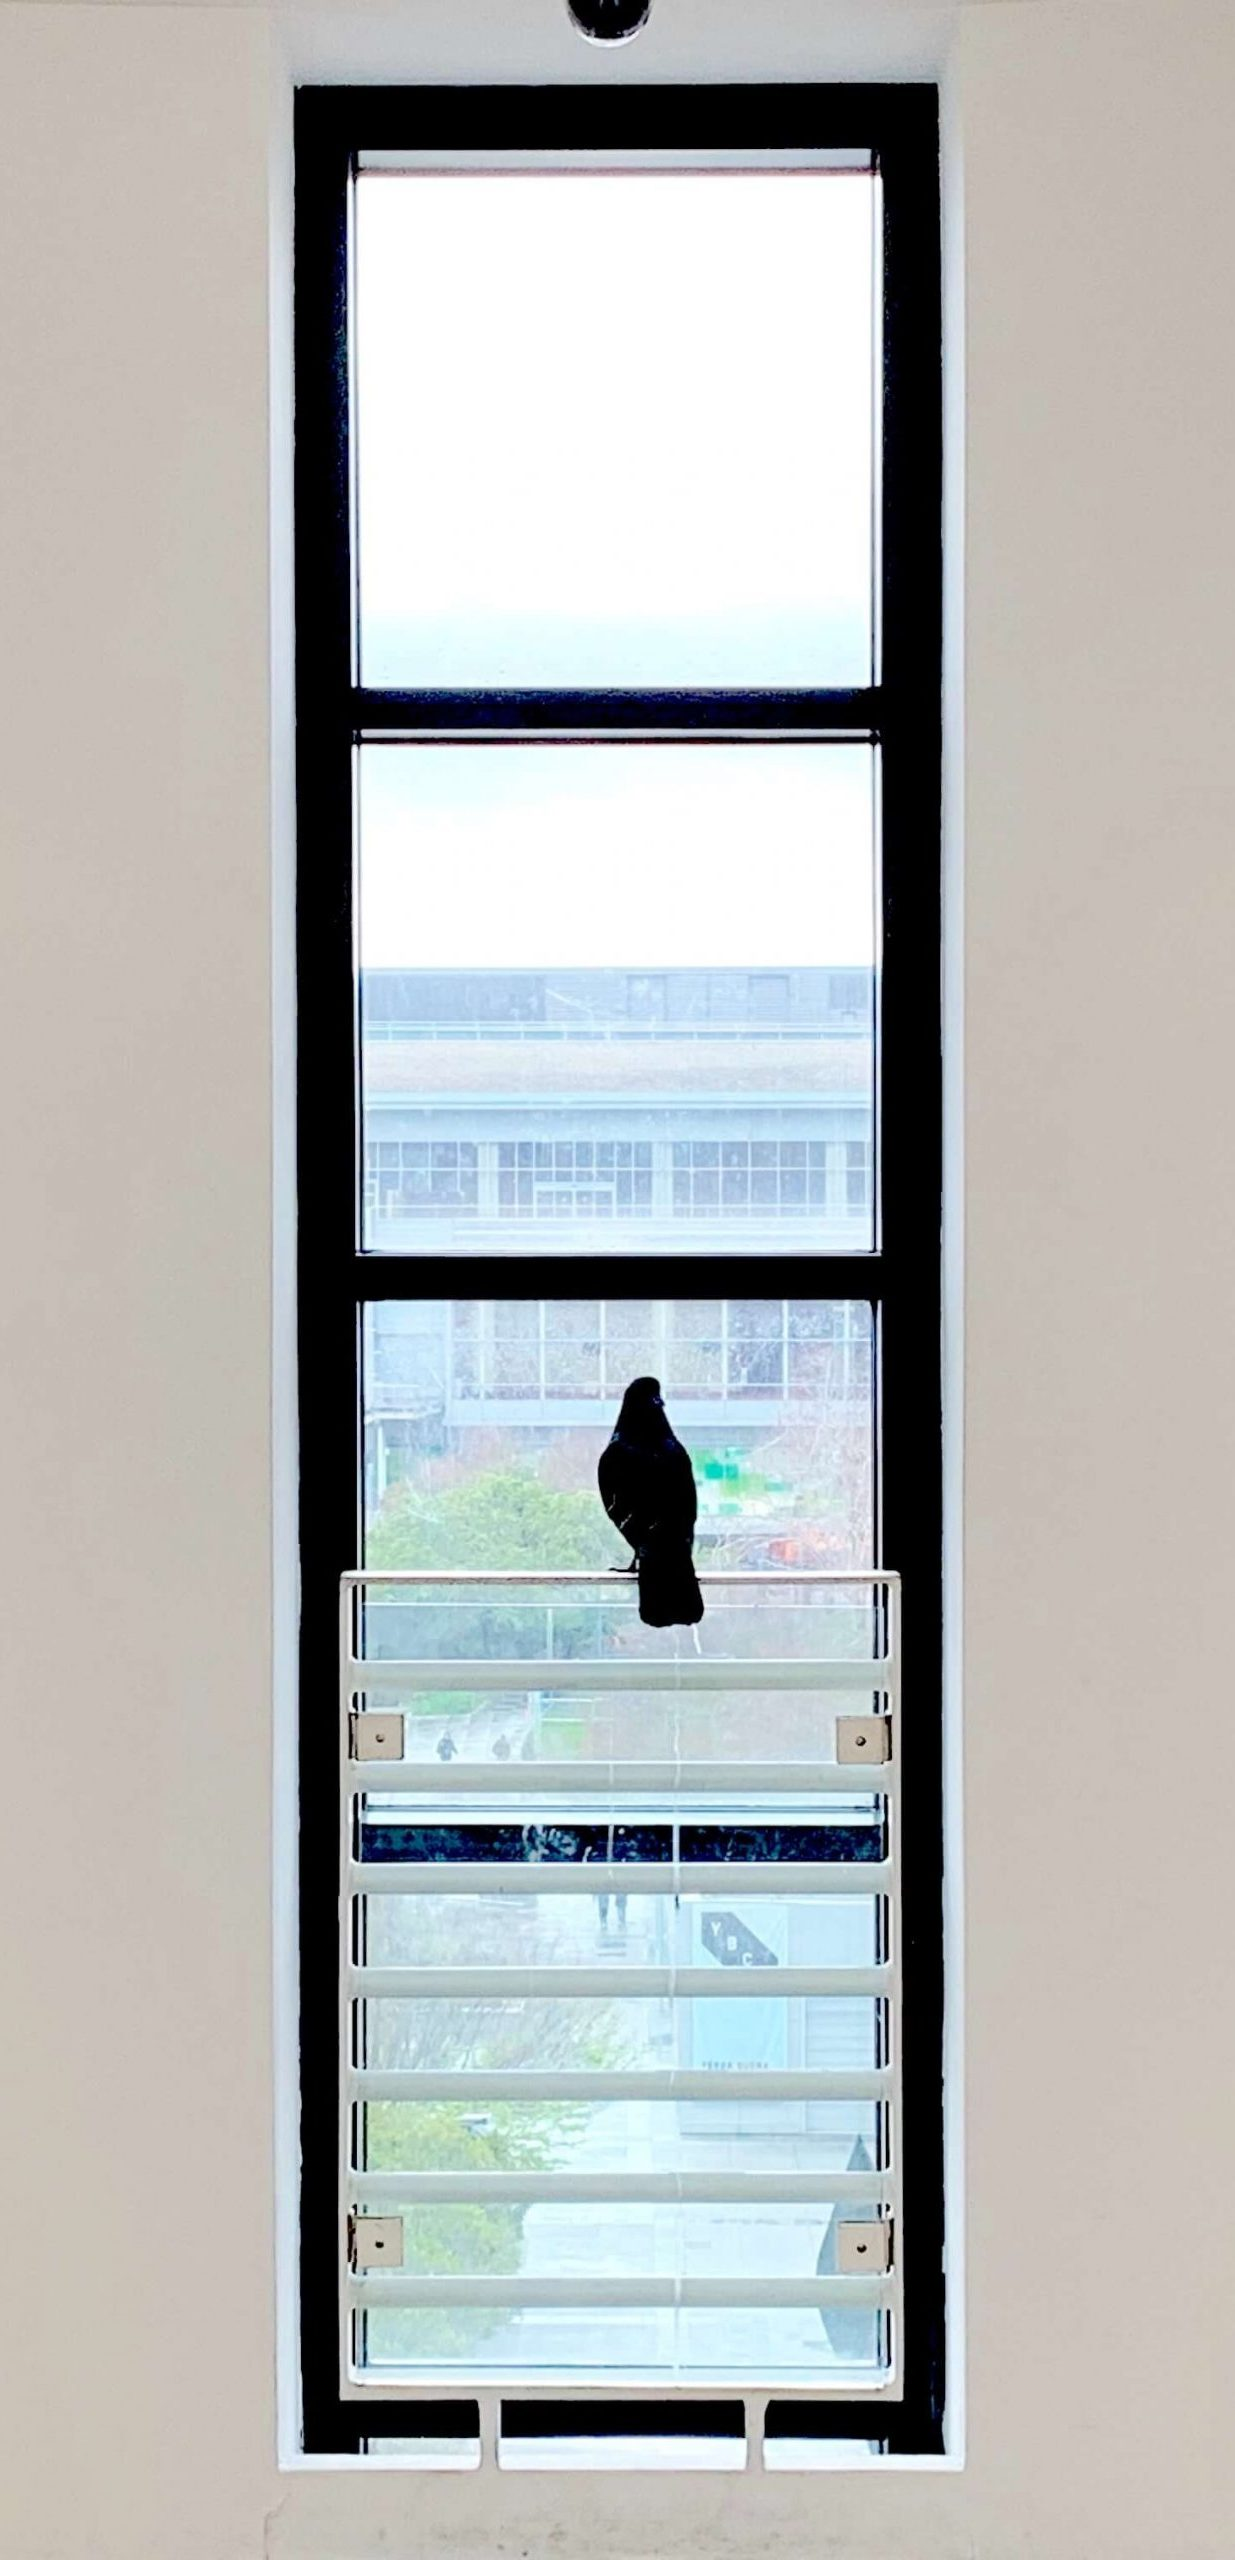 black window frame with a bird sitting in it looking outside